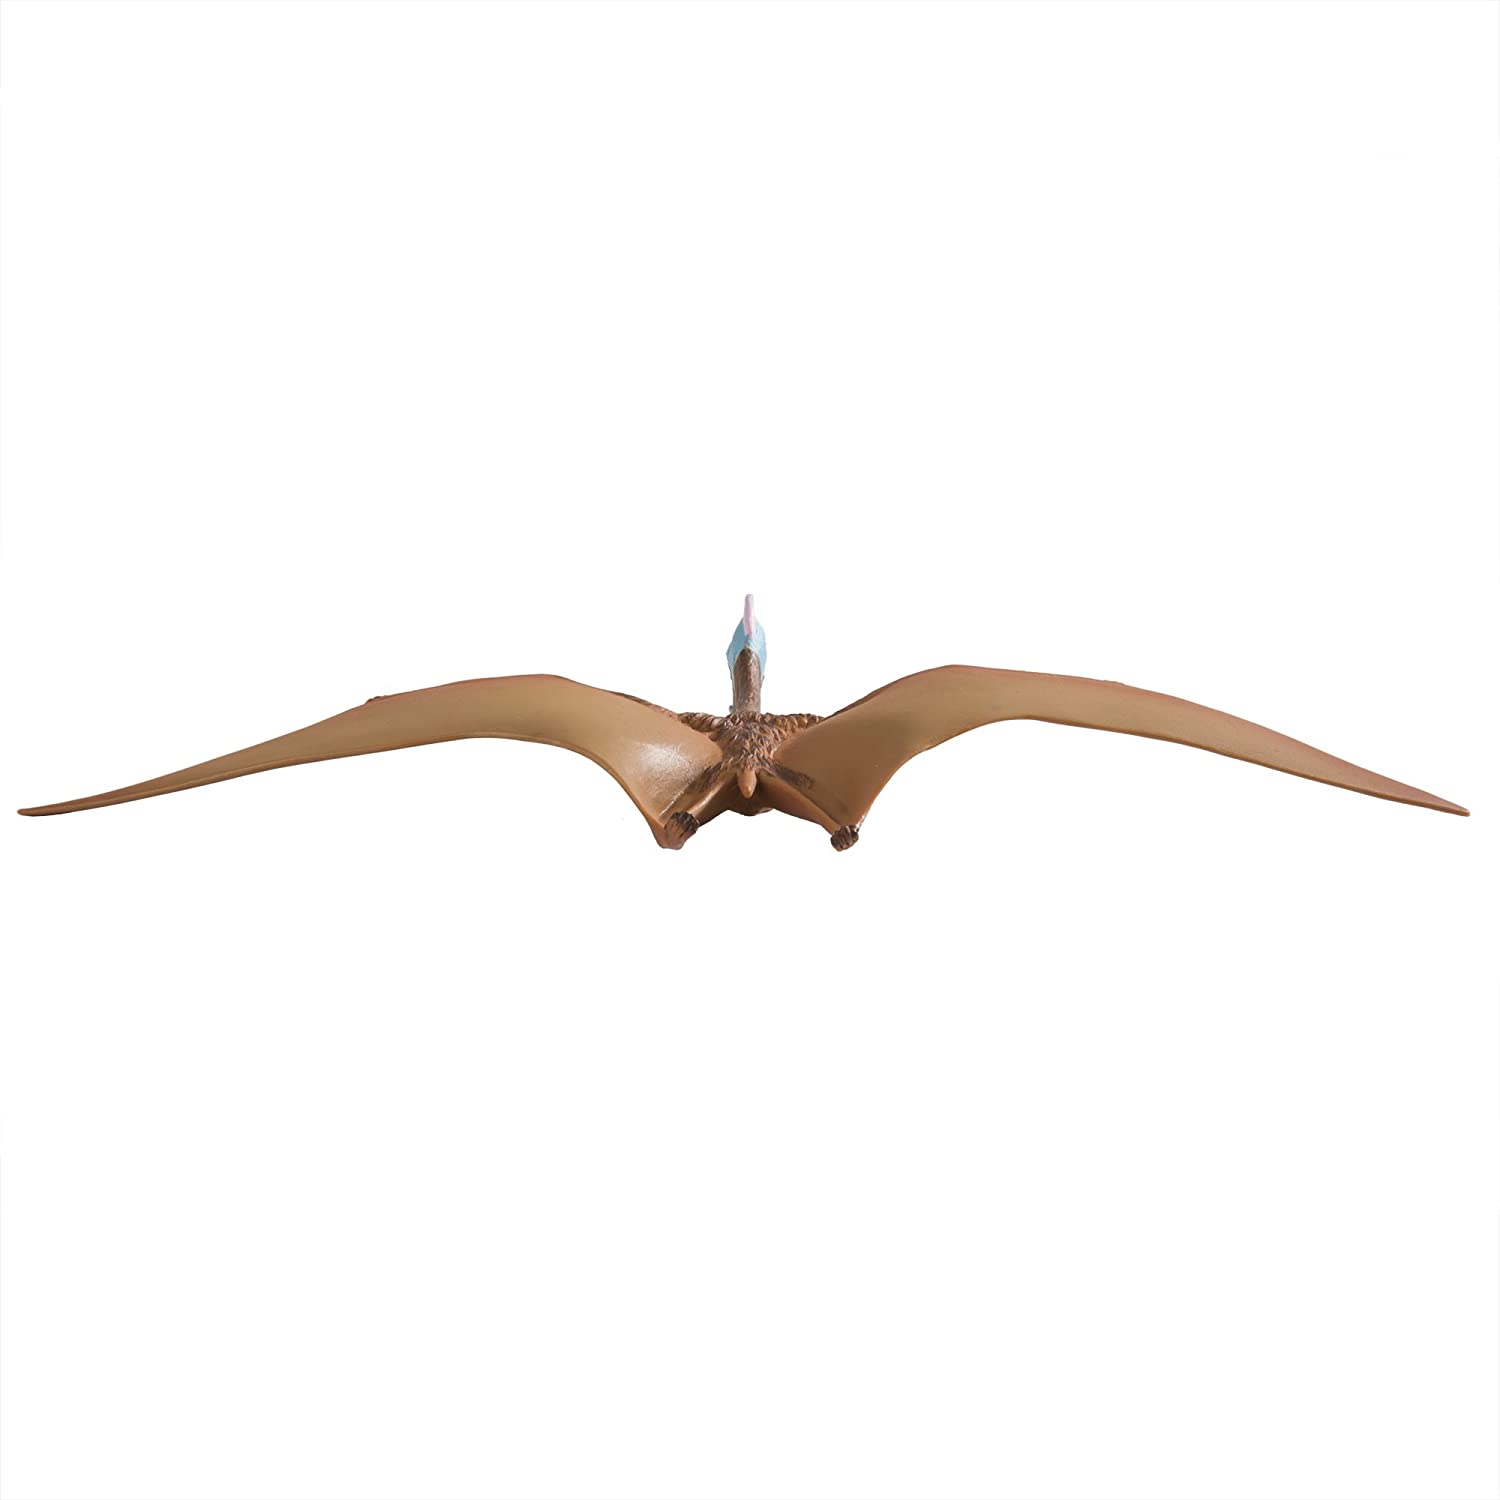 Safari Ltd Quetzalcoatlus Realistic Hand Painted Toy Figurine Model Quality Construction from Phthalate Lead and BPA Free Materials for Ages 3 and Up